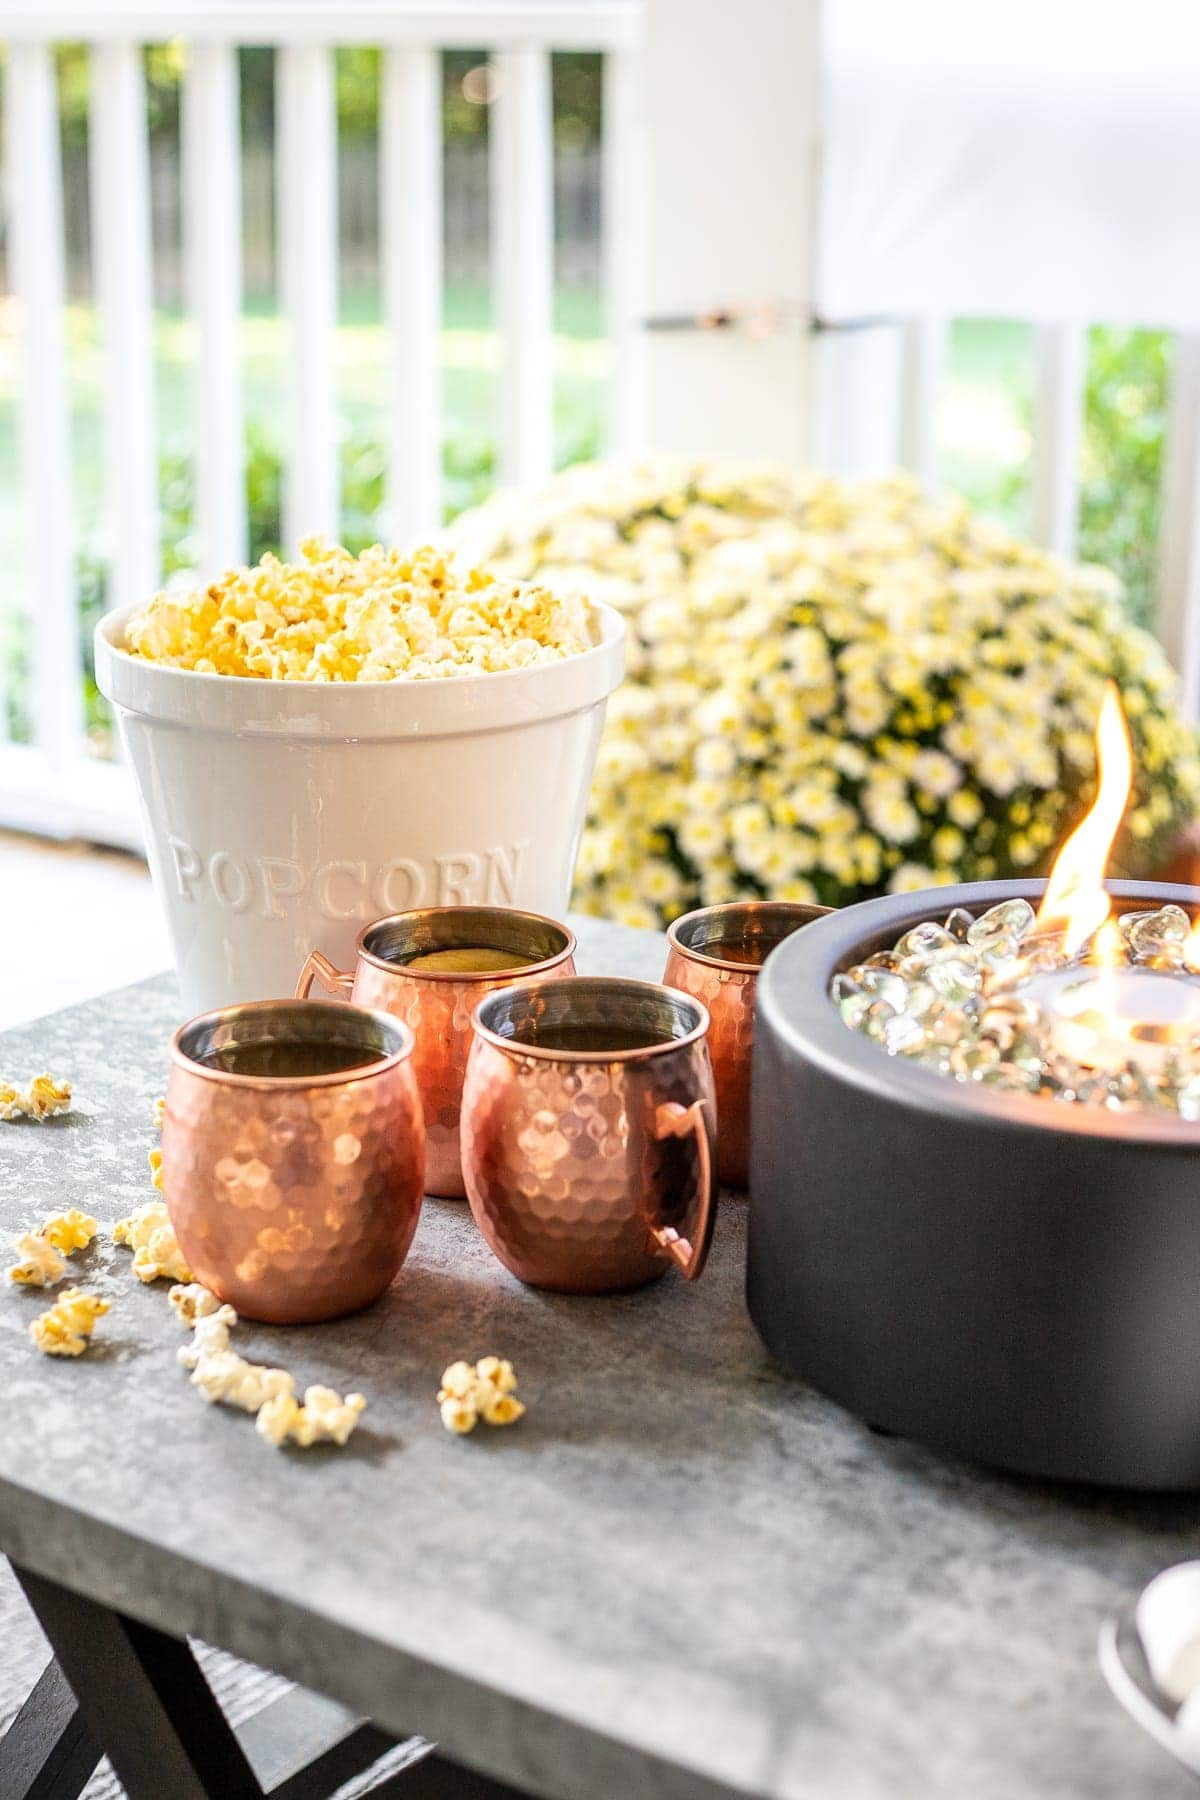 Copper mugs, popcorn, and fire bowl